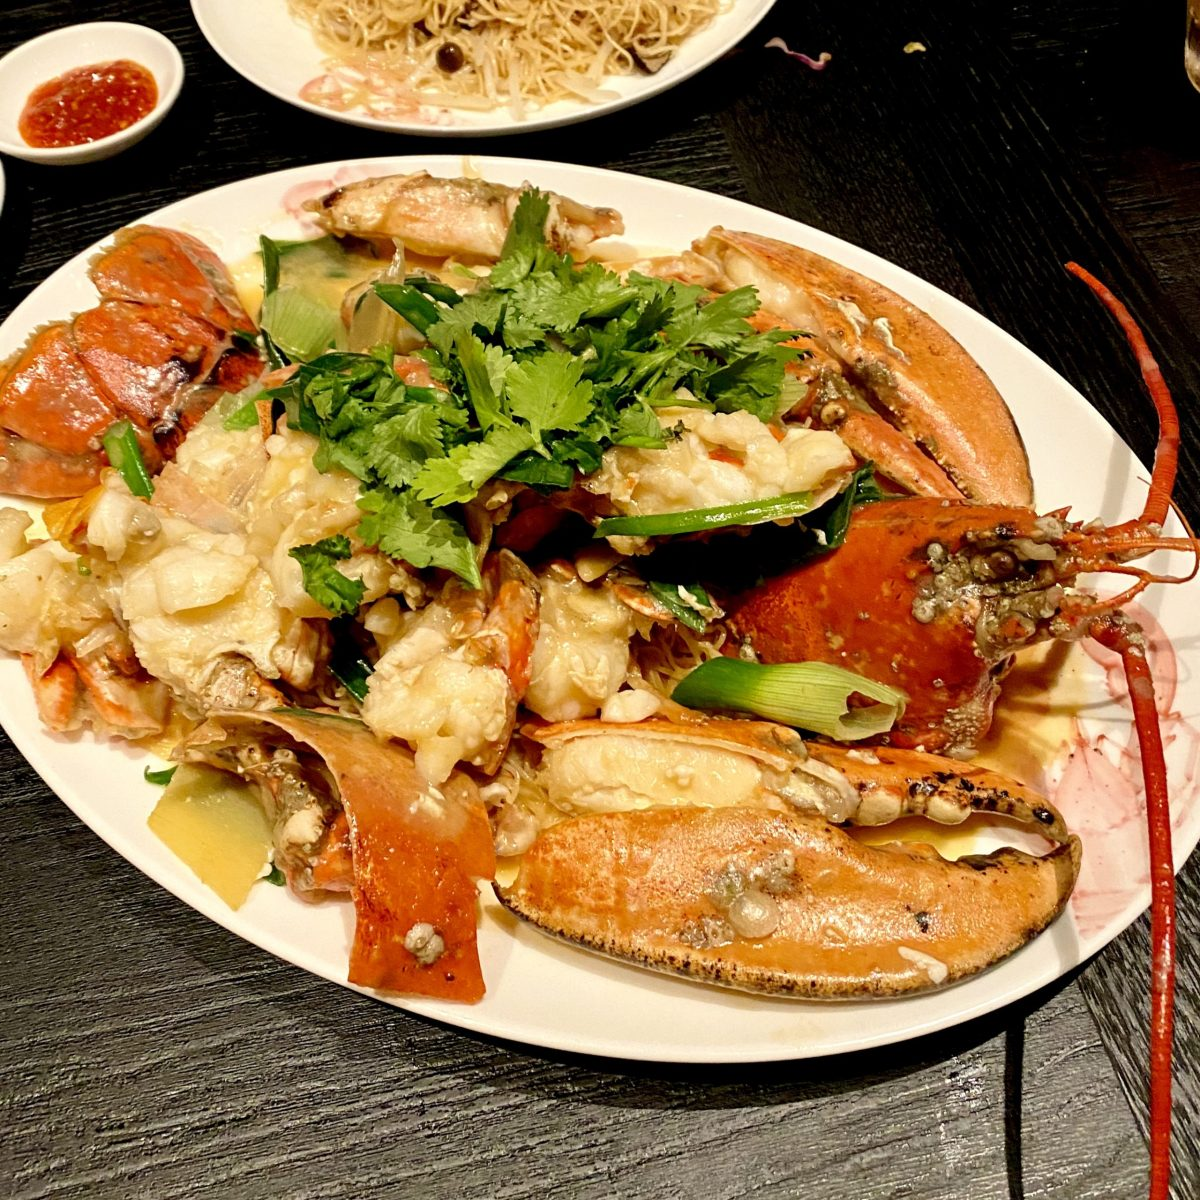 Imperial Treasure London Waterloo Place Chinese Restaurant Michelin High End St James Mayfair Cantonese Expensive Luxury Dining Scottish Blue Lobster Braised Noodle Ginger Spring Onion